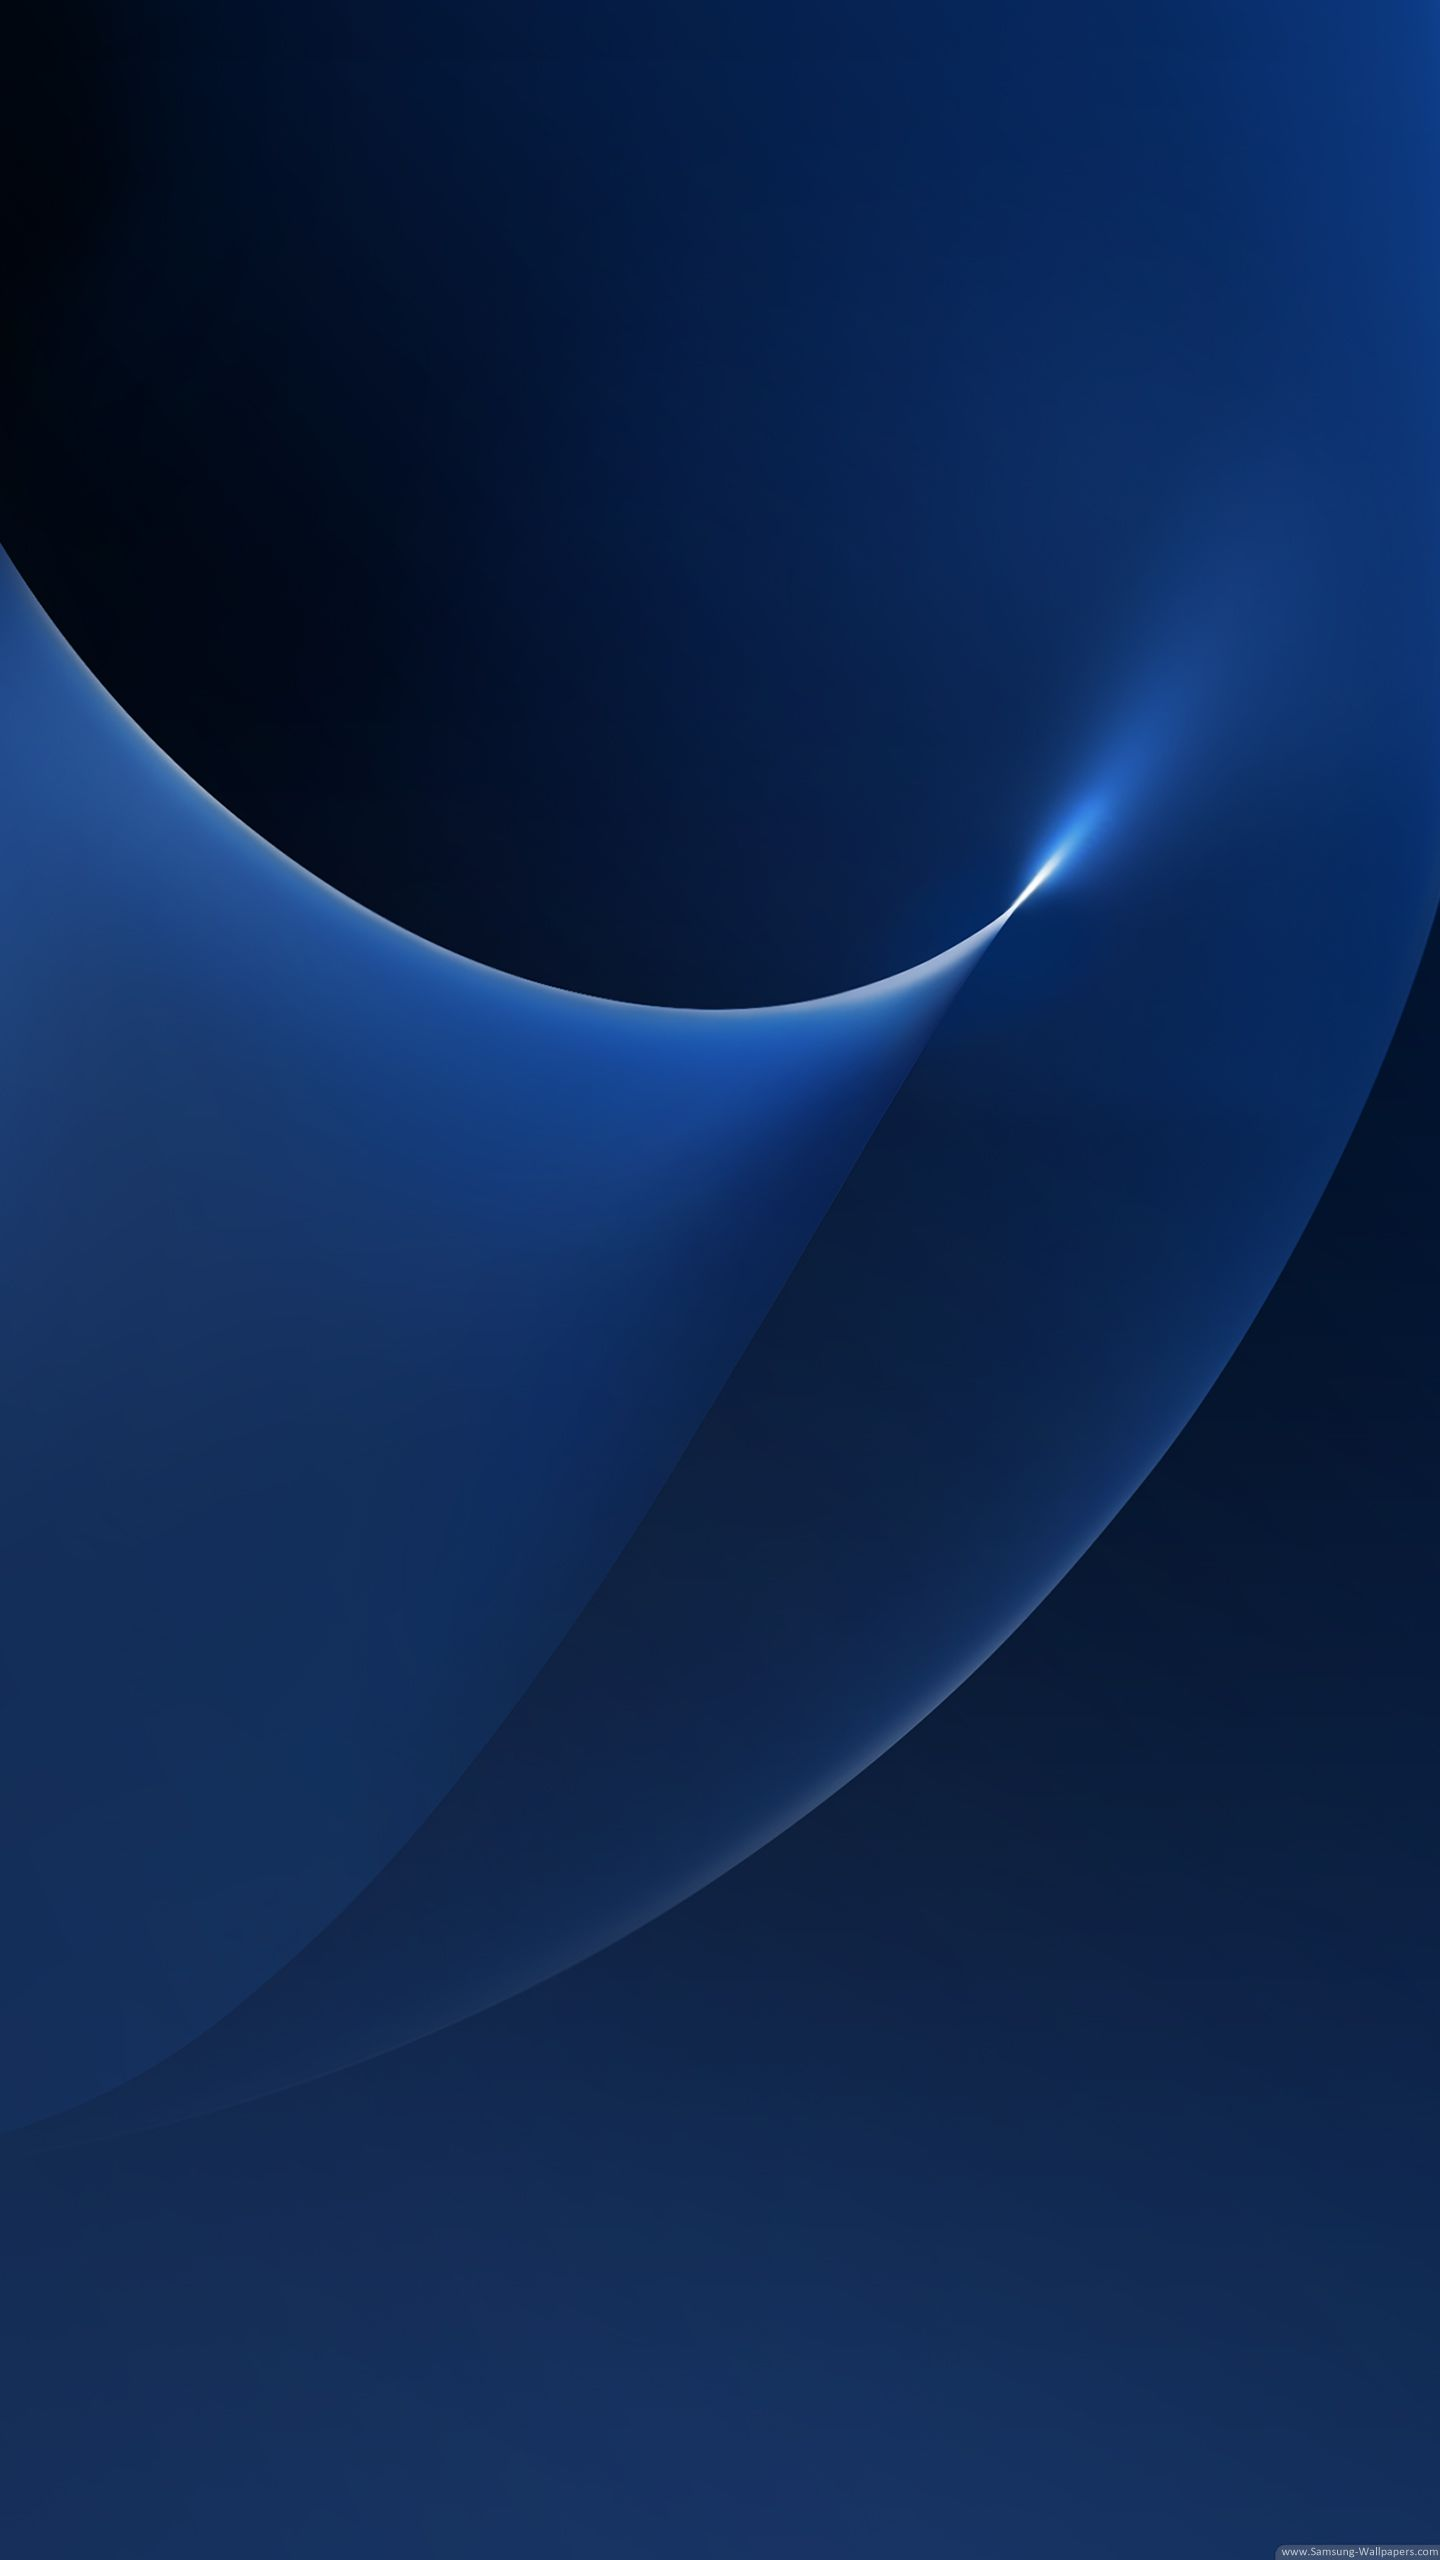 Samsung wallpaper s7 wallpapers pinterest samsung wallpaper s7 voltagebd